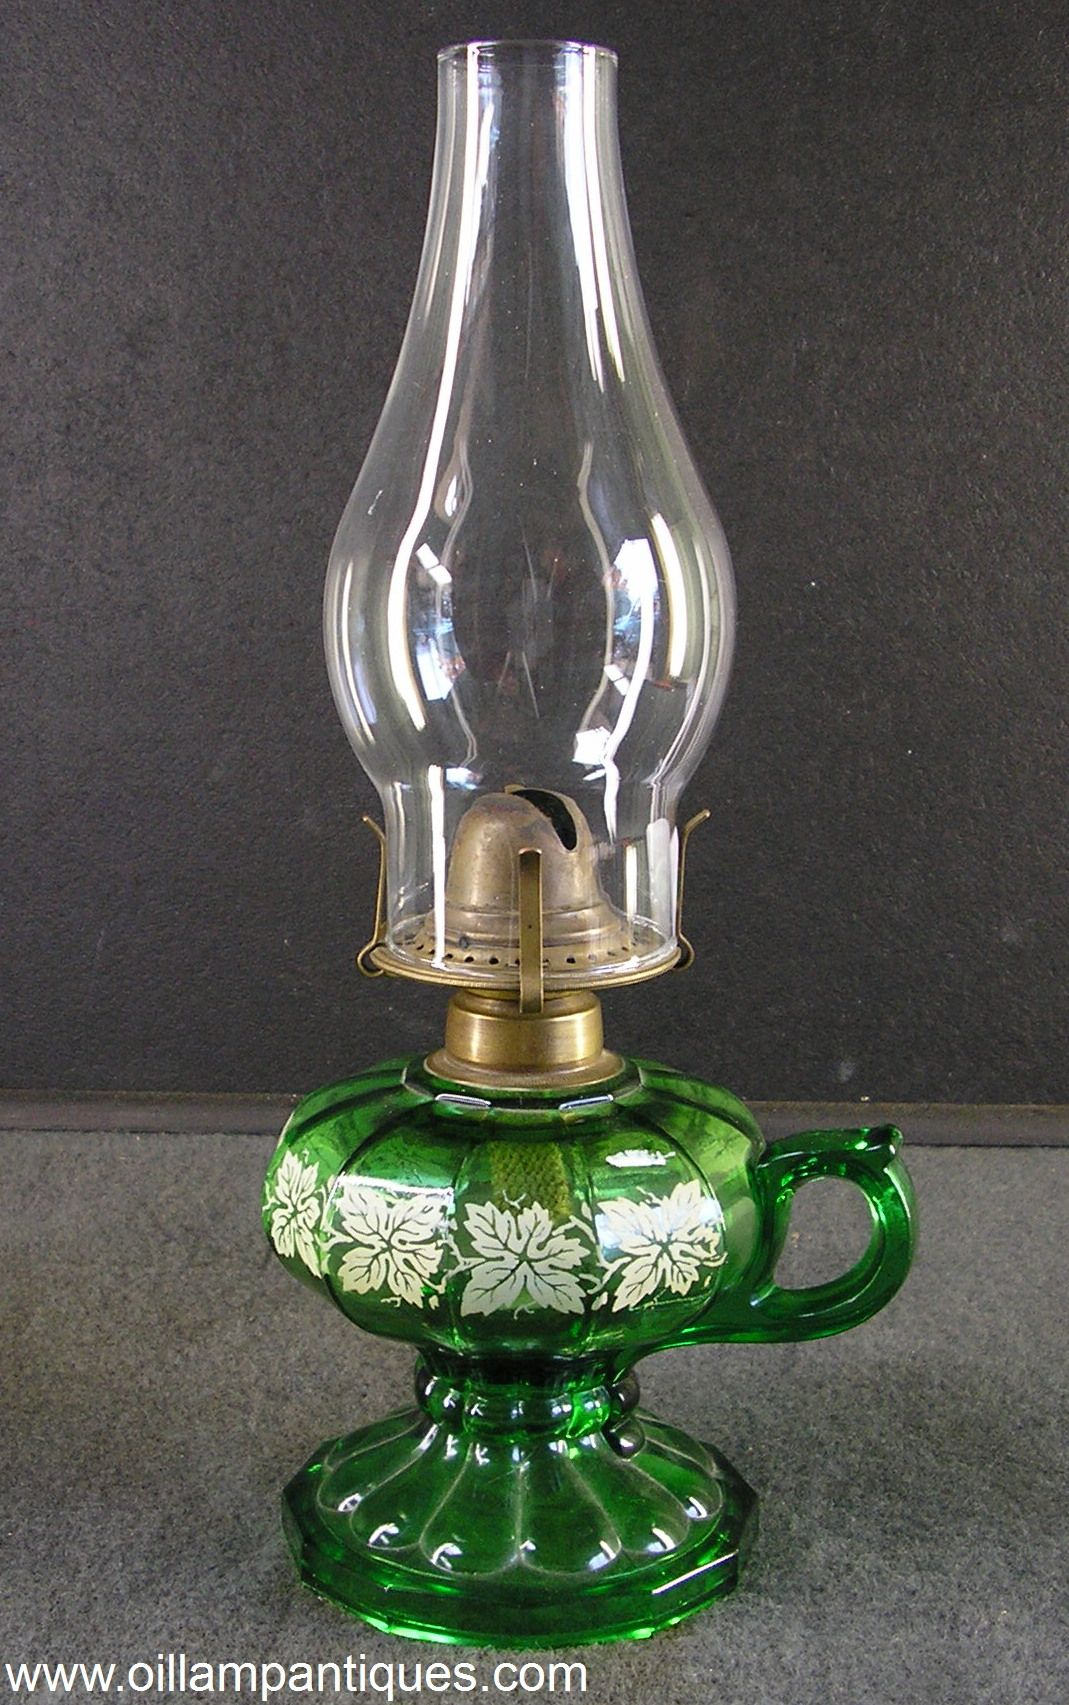 Emerald Green Glass Pedestal Finger Oil Lamp With Stencil Decorated Font Circa 1920 Lamp Oil Lamps Hurricane Oil Lamps